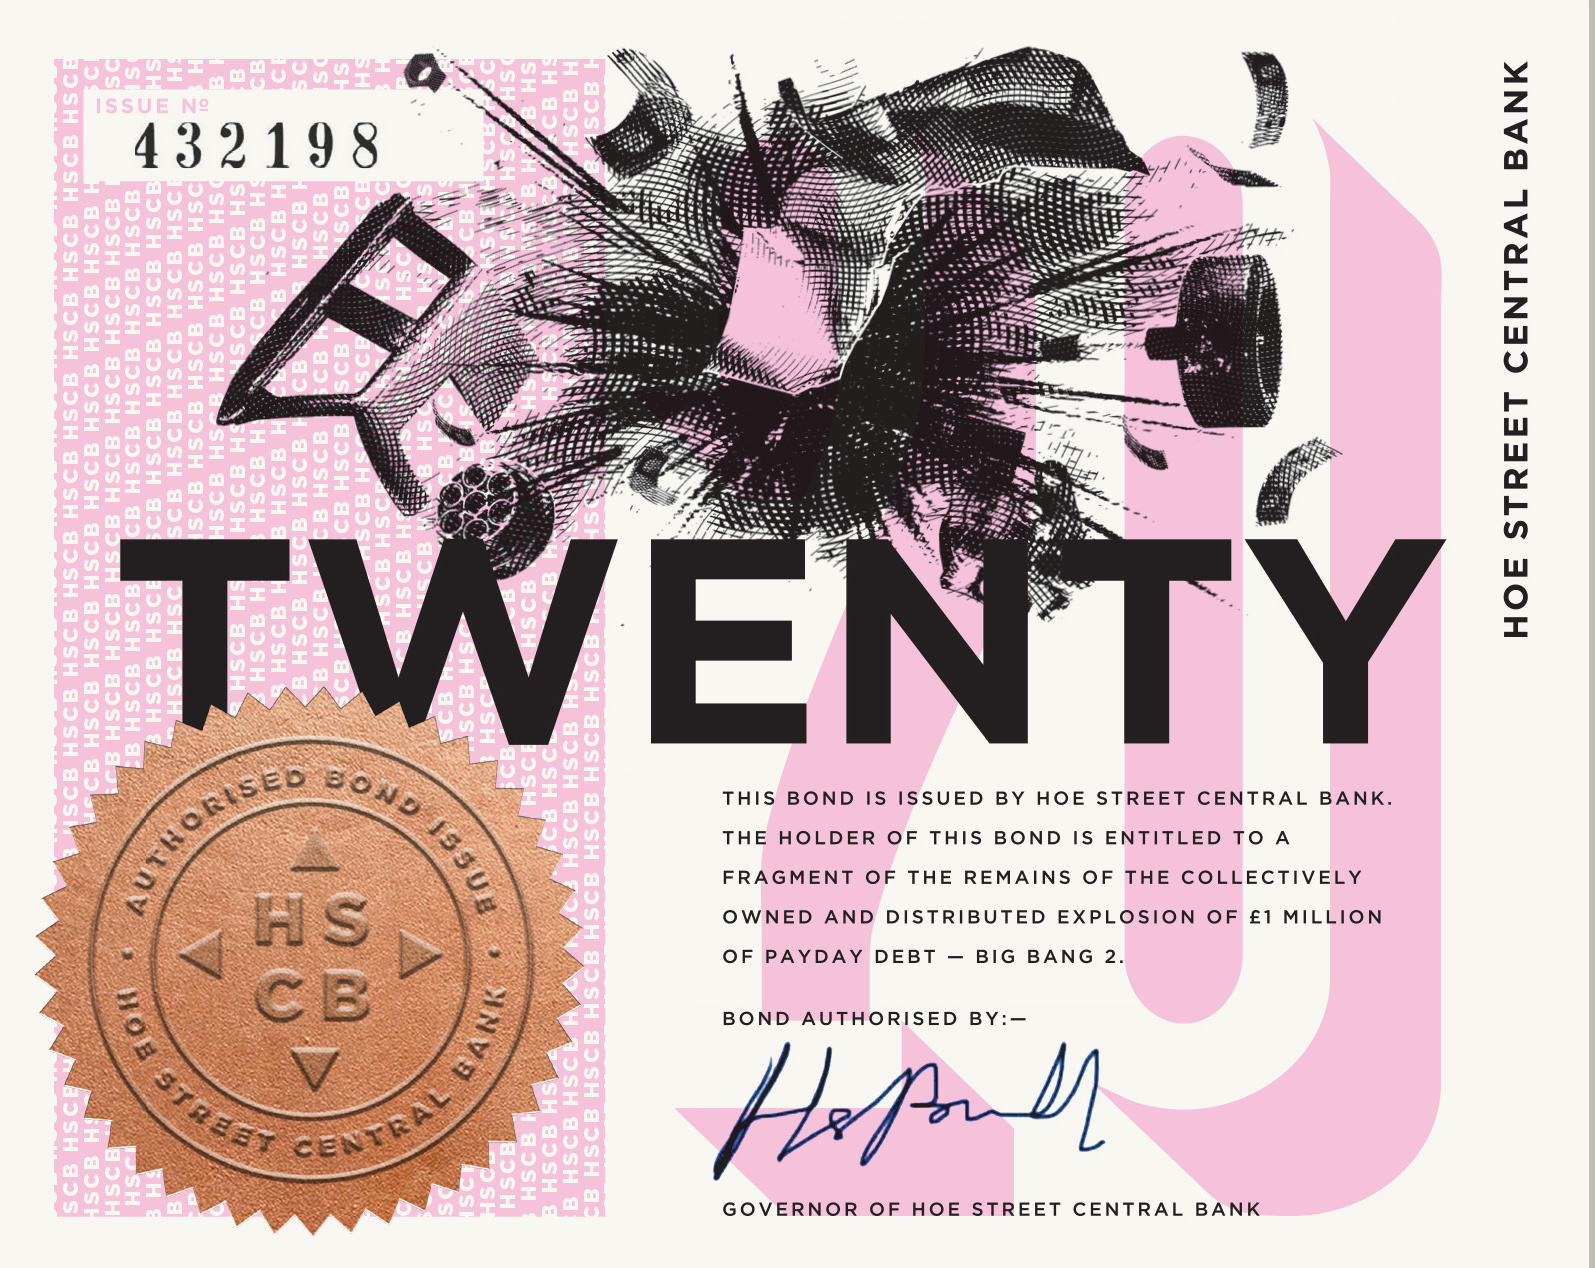 £20 HSCB BOND. 135x108mm. Pink. Screen print, letterpress, foil block, company seal. Stockwell 200gsm paper. Gilt edge.   BUY £20 BOND  . The above is a digital version. See images of printed bonds here. Return: fragment.